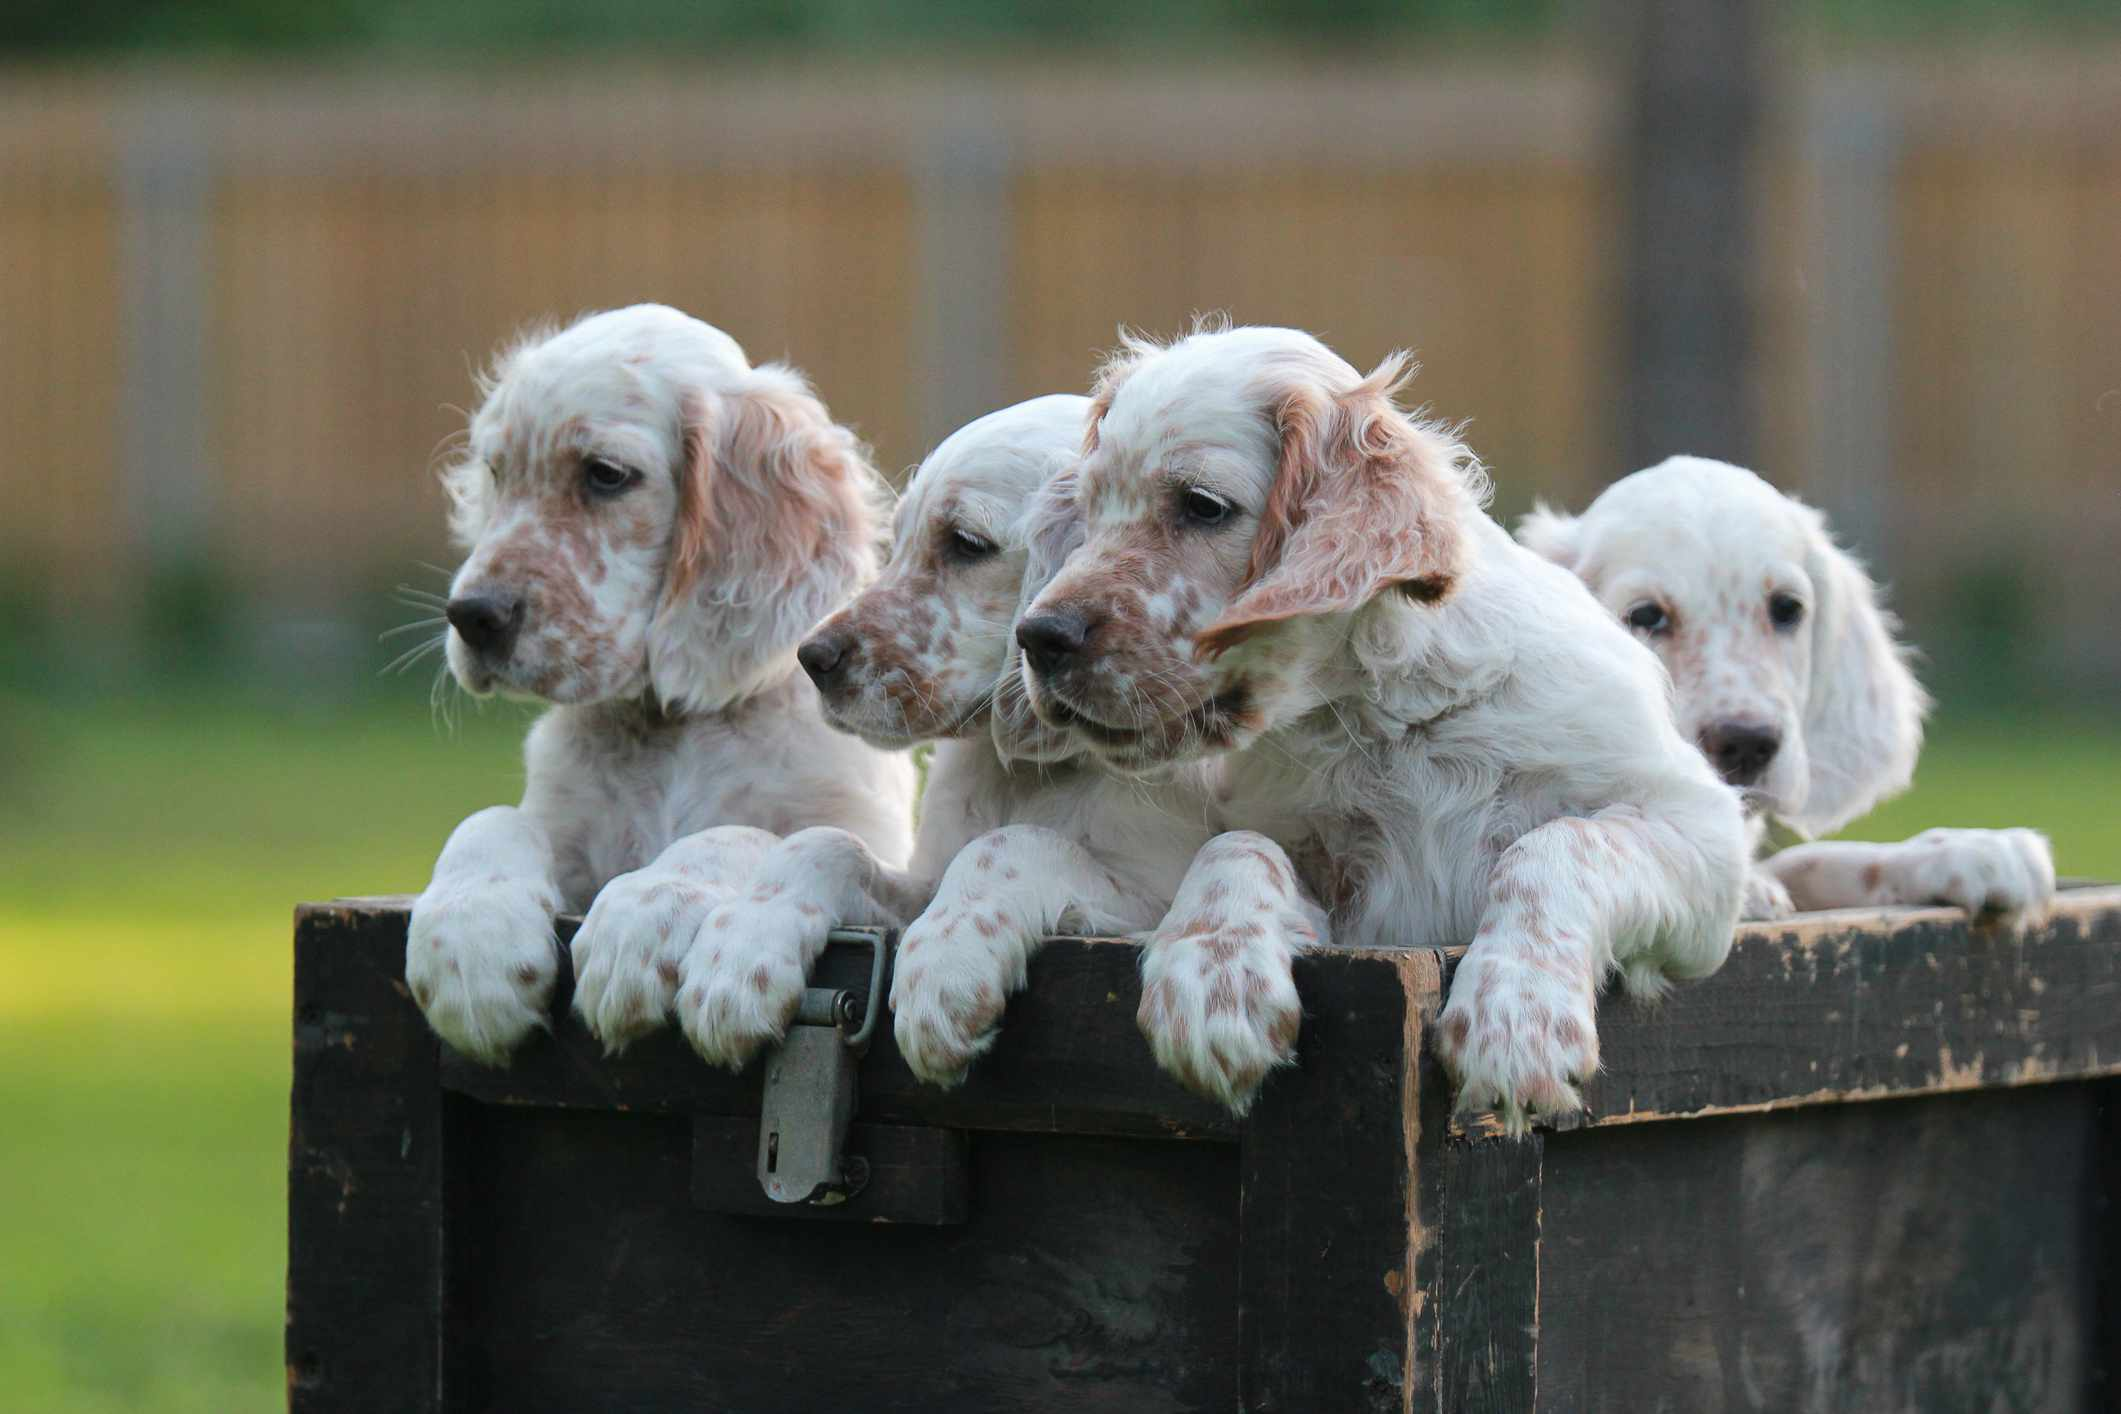 Four English Setter Puppies in a box